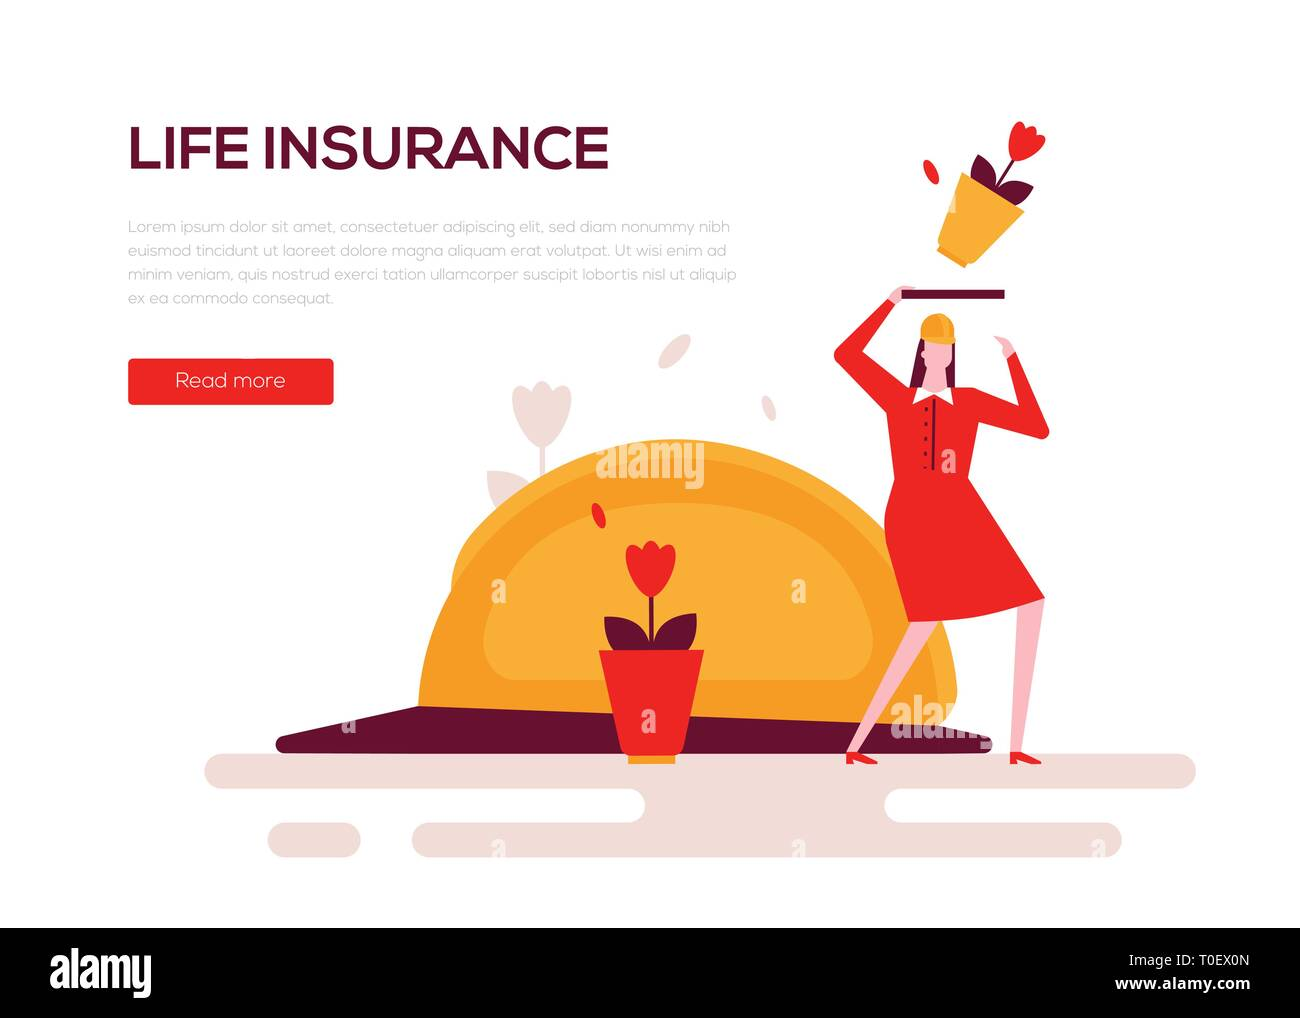 Life Insurance Colorful Flat Design Style Web Banner Stock Vector Image Art Alamy